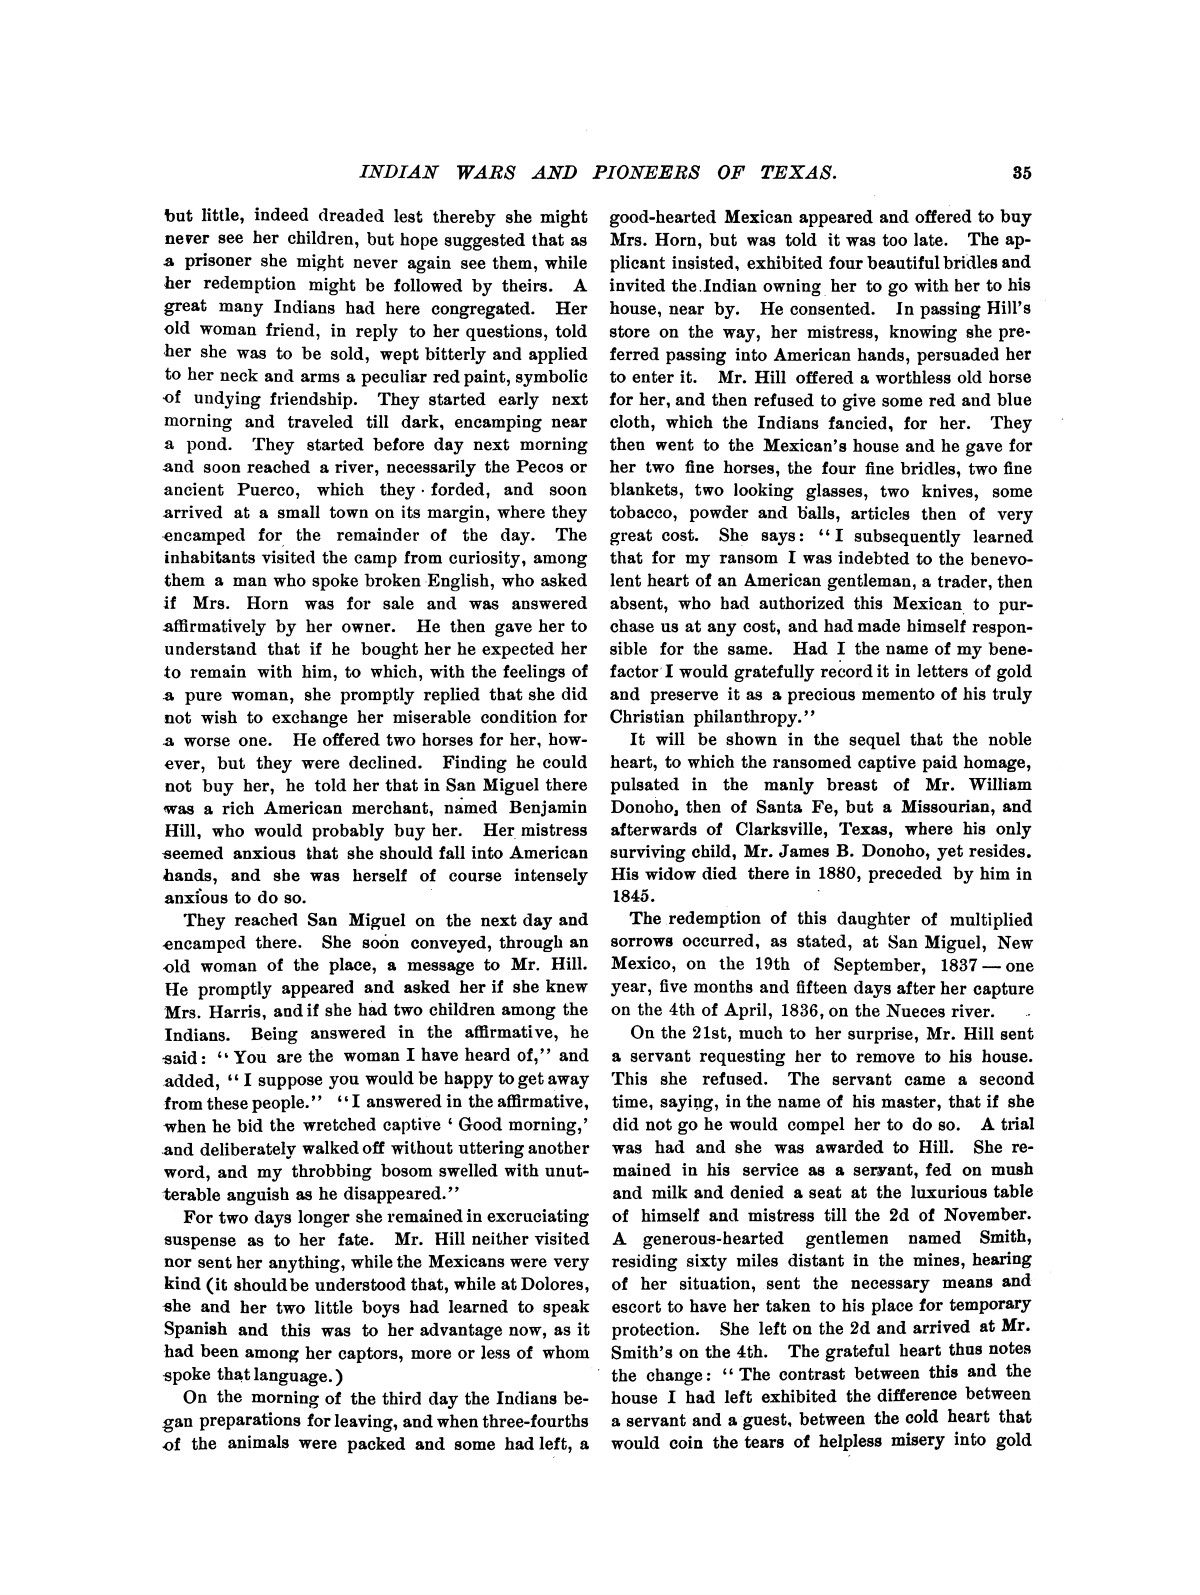 Indian wars and pioneers of Texas / by John Henry Brown.                                                                                                      [Sequence #]: 42 of 894